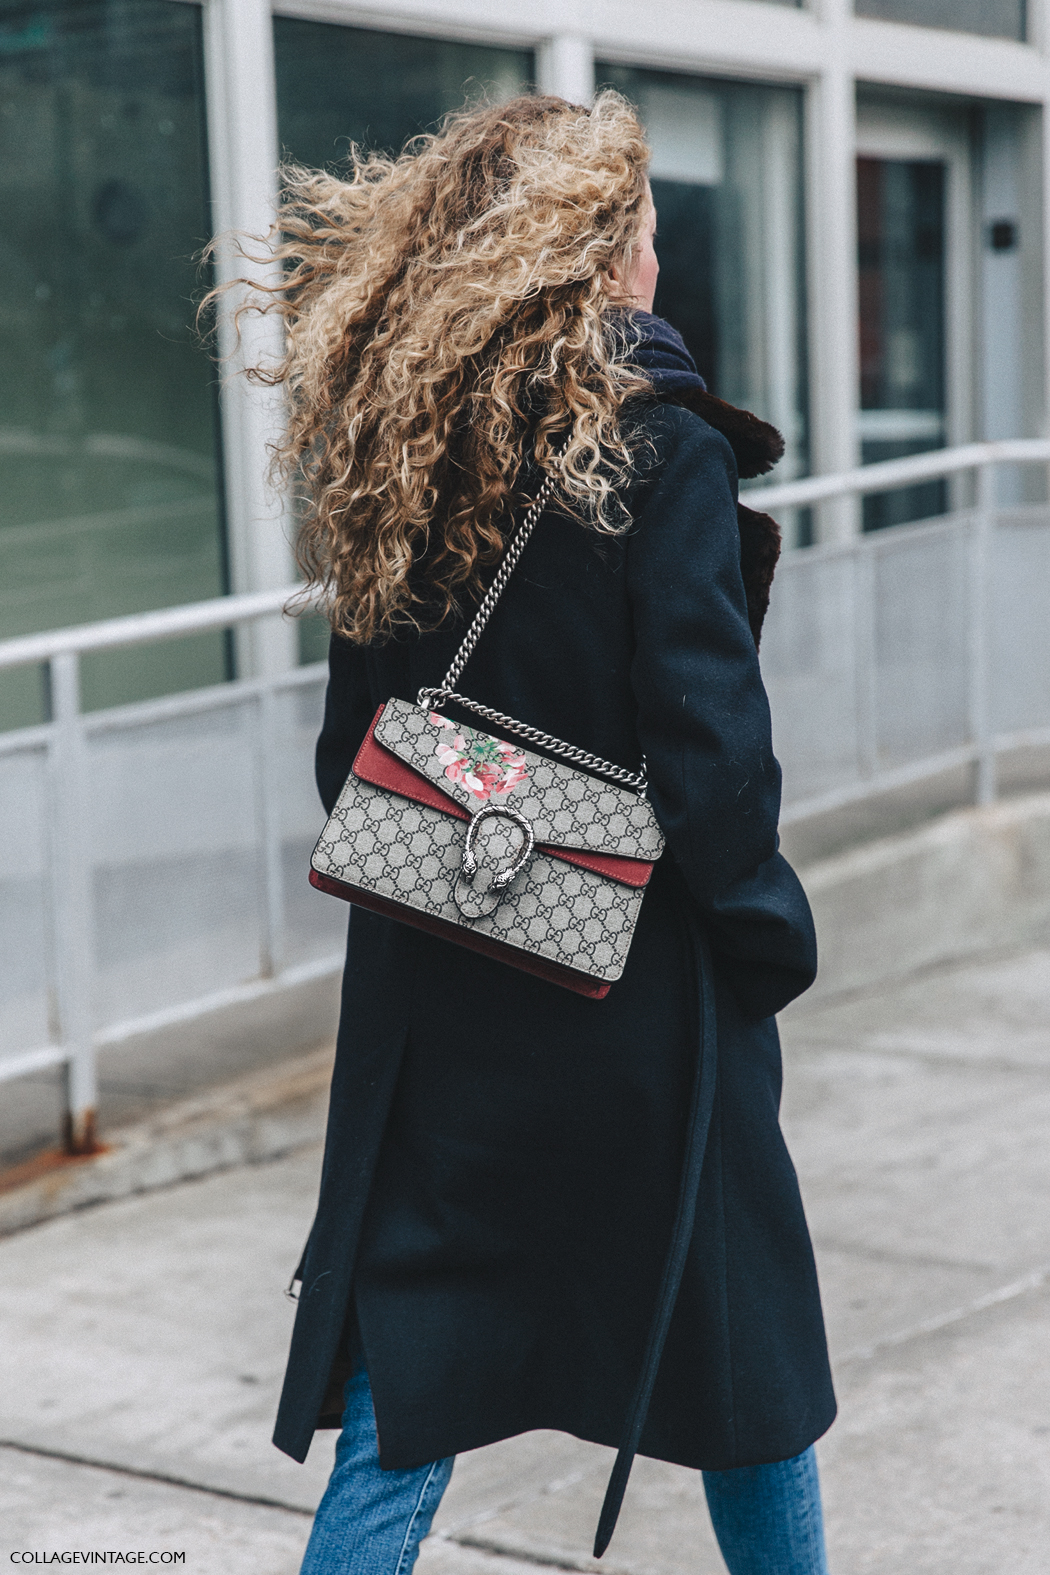 NYFW-New_York_Fashion_Week-Fall_Winter-17-Street_Style-Navy_Blue_Coat-Gucci_Dionysus_Bag-